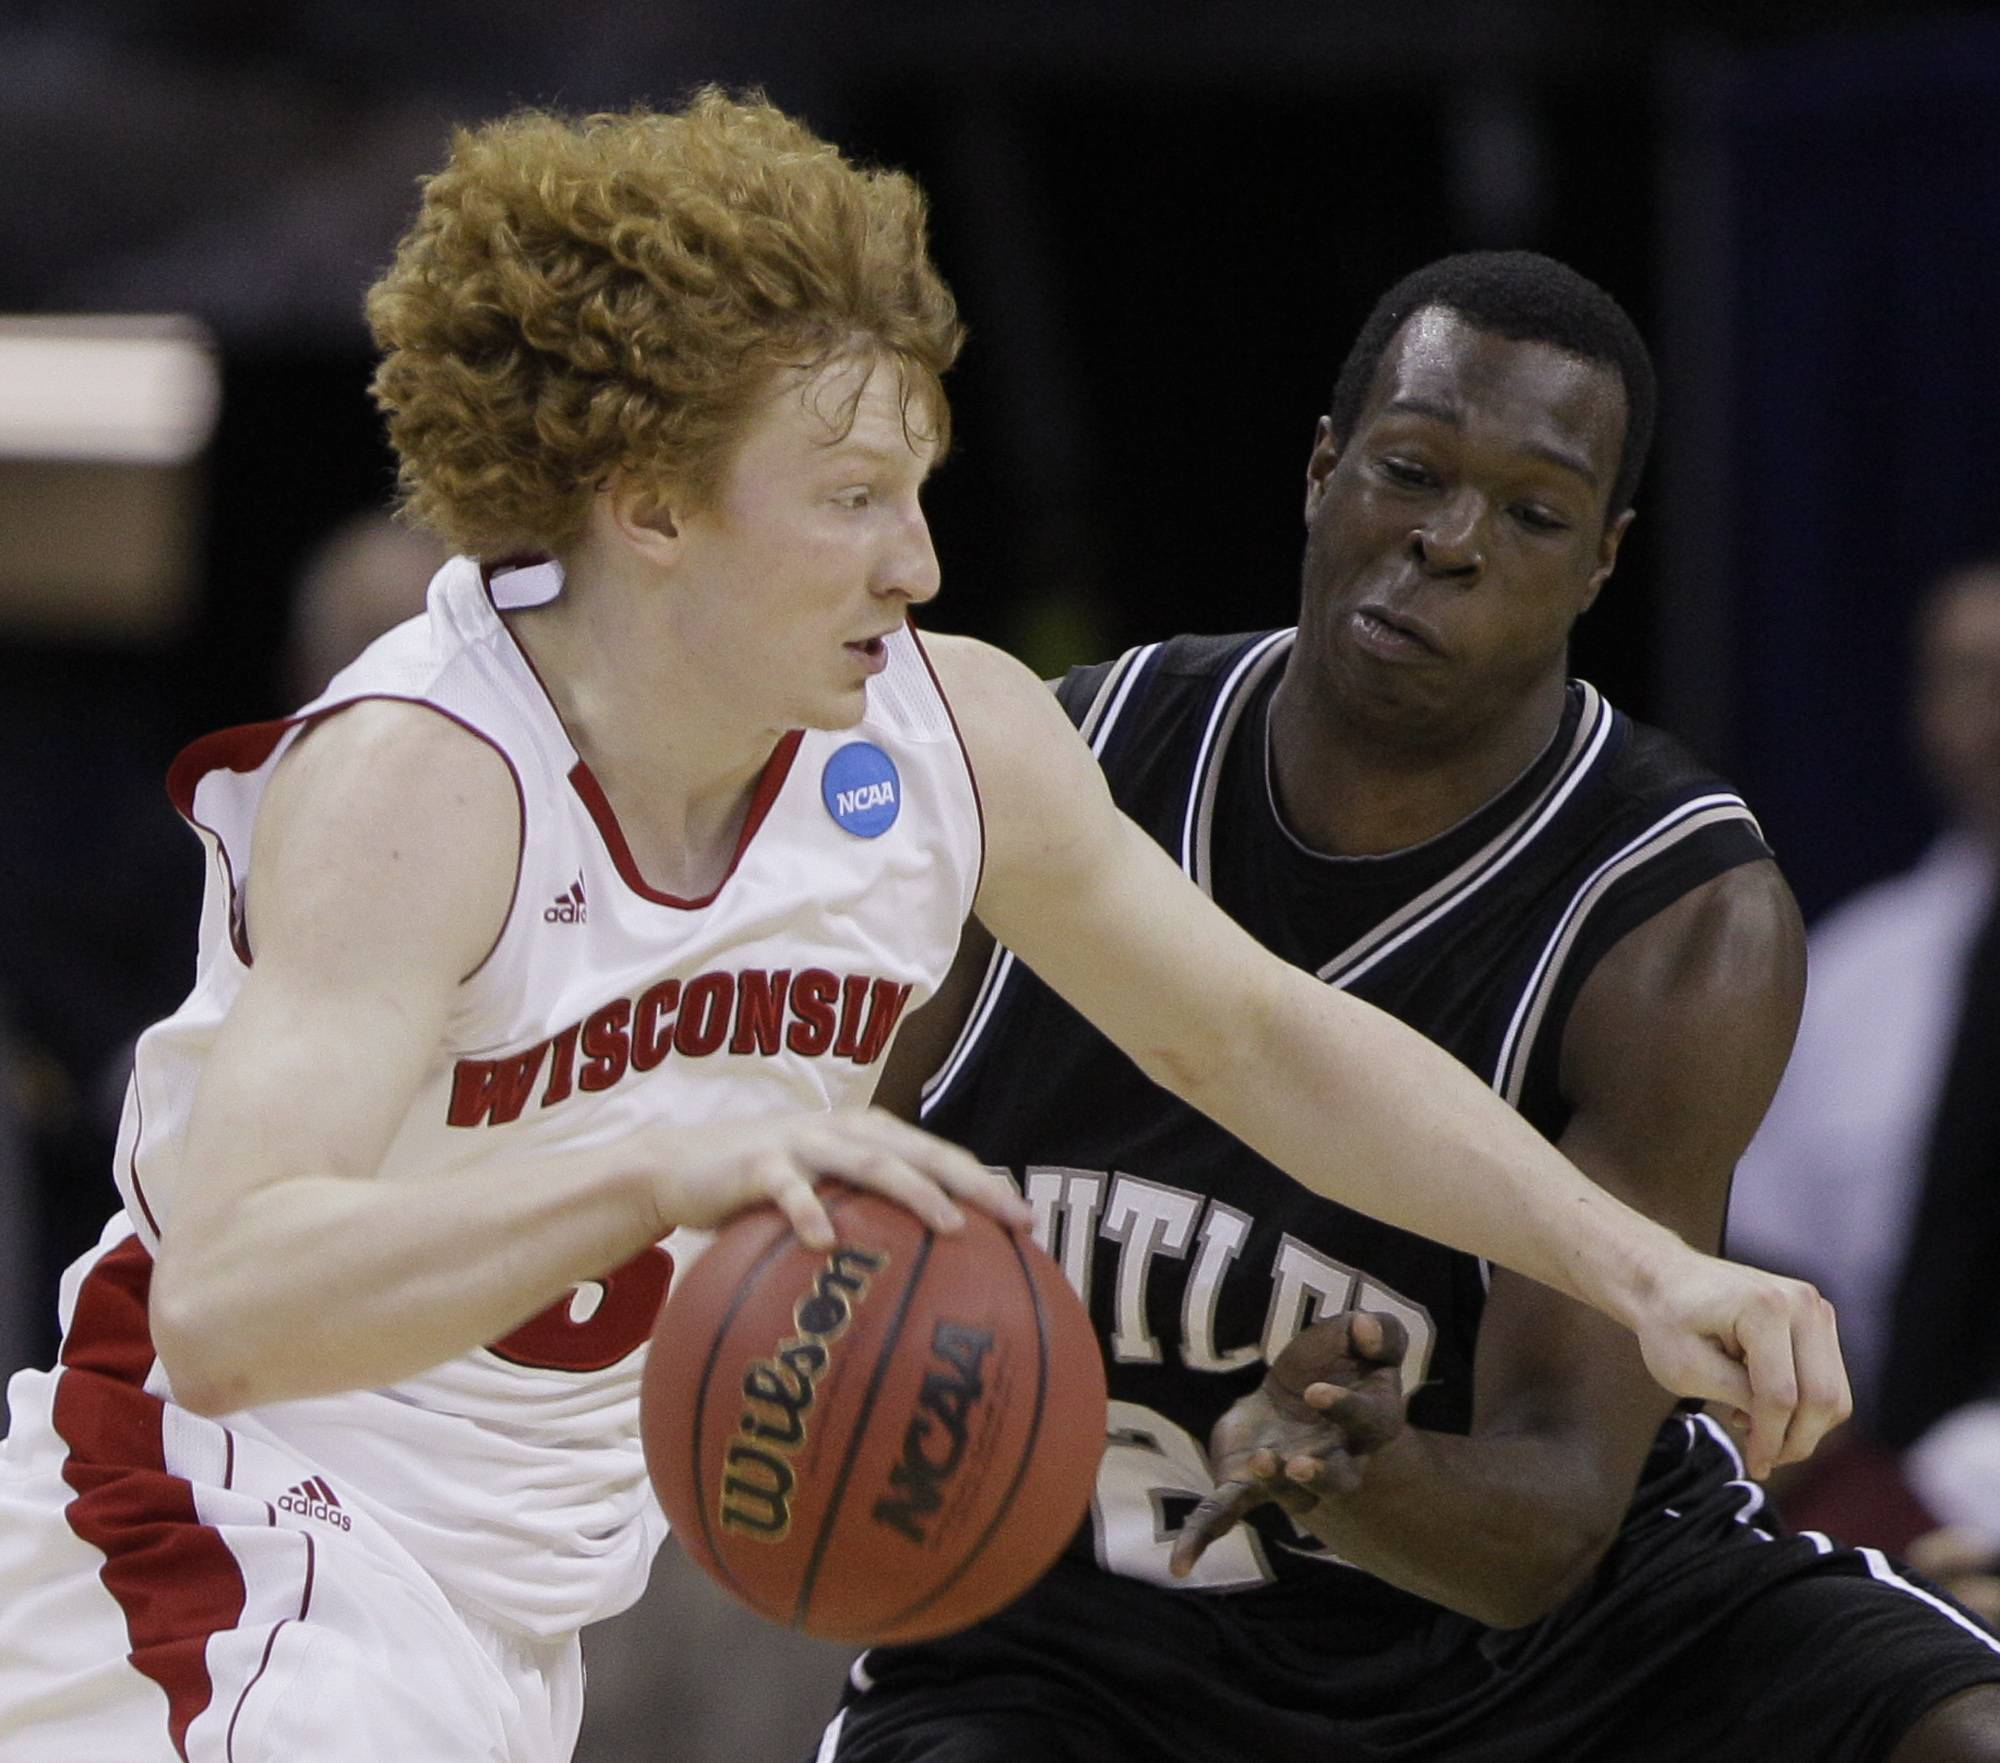 Wisconsin's Mike Bruesewitz tries to drive past Butler's Khyle Marshall during the second half of the NCAA Southeast regional college basketball semifinal game Thursday, March 24, 2011, in New Orleans.